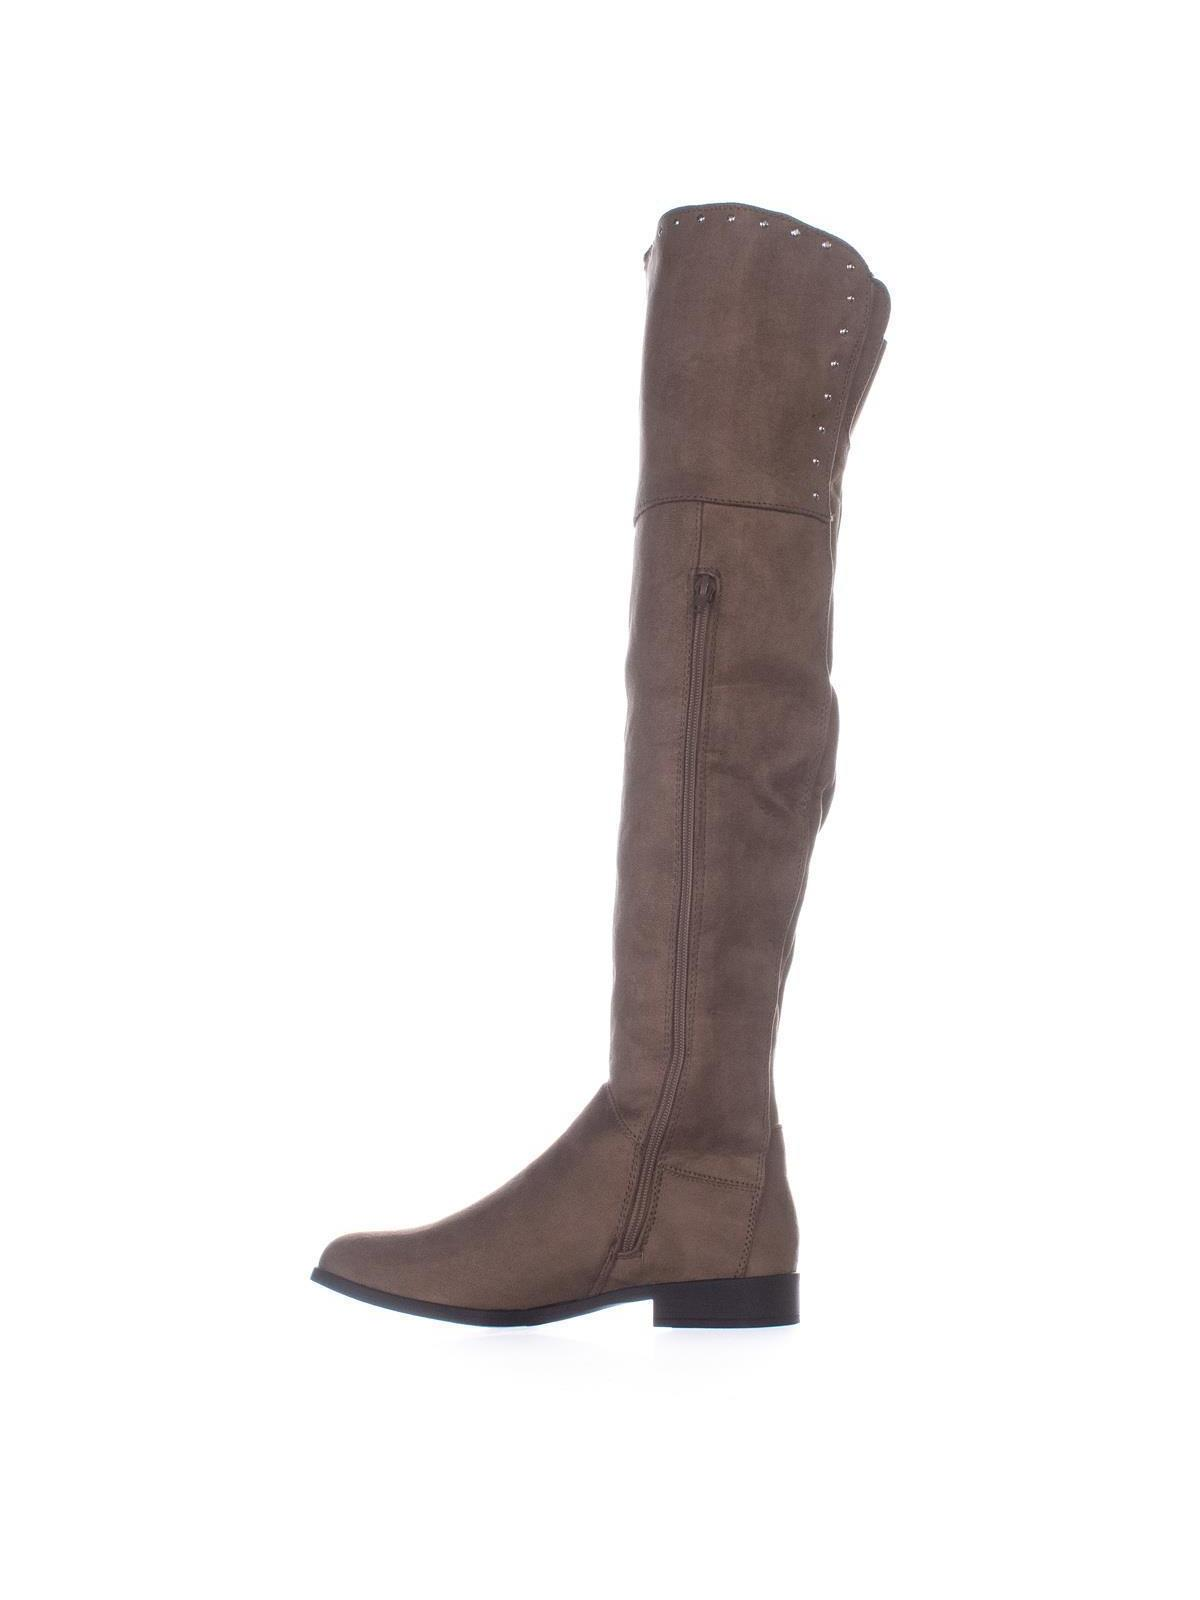 XOXO Travis Over The Knee Boots, Taupe